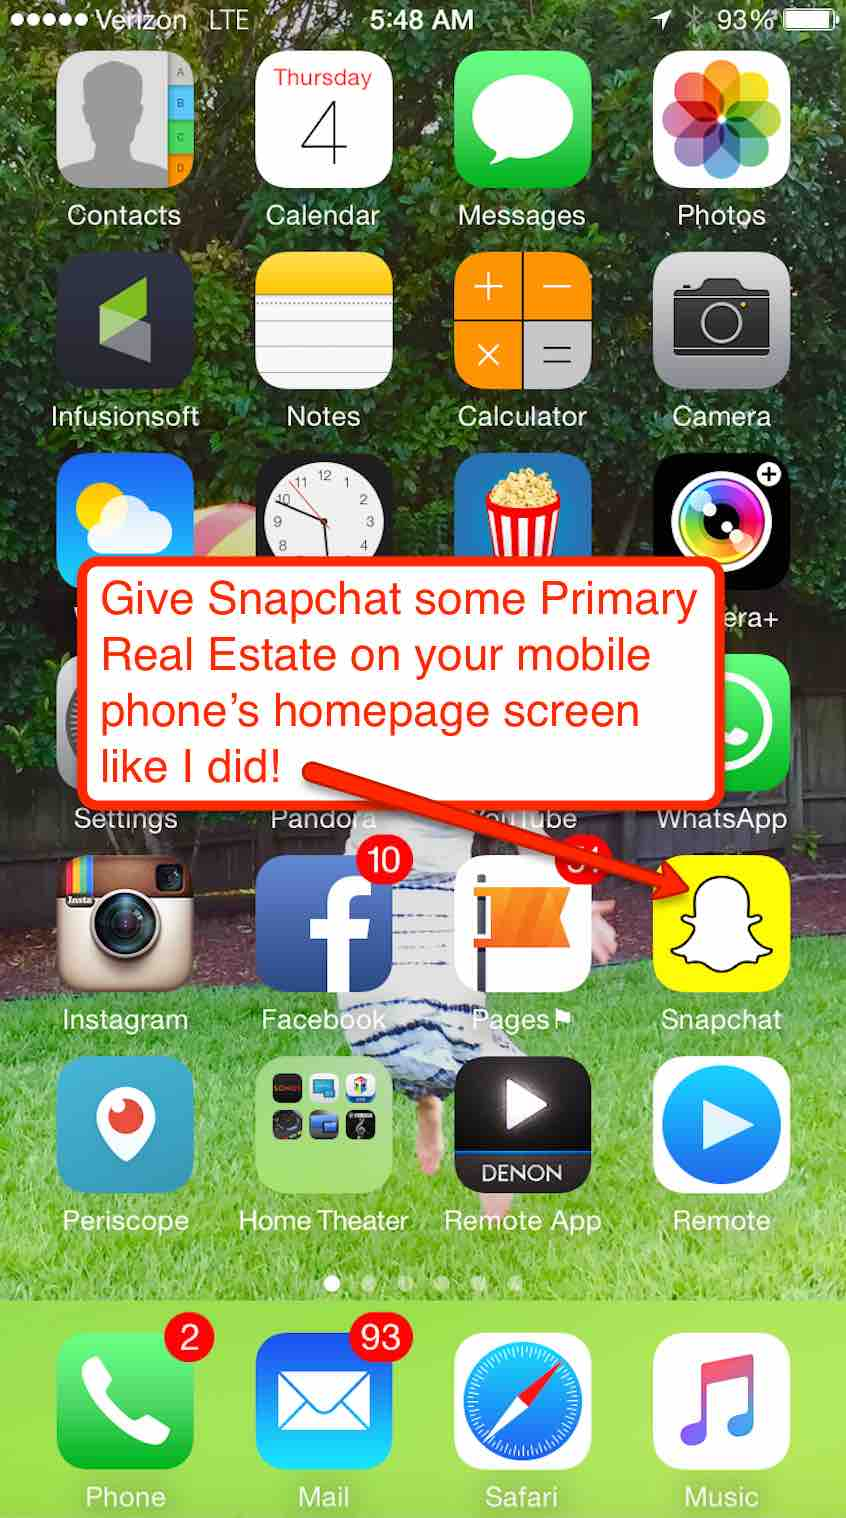 snapchat on homepage Cesar's phone